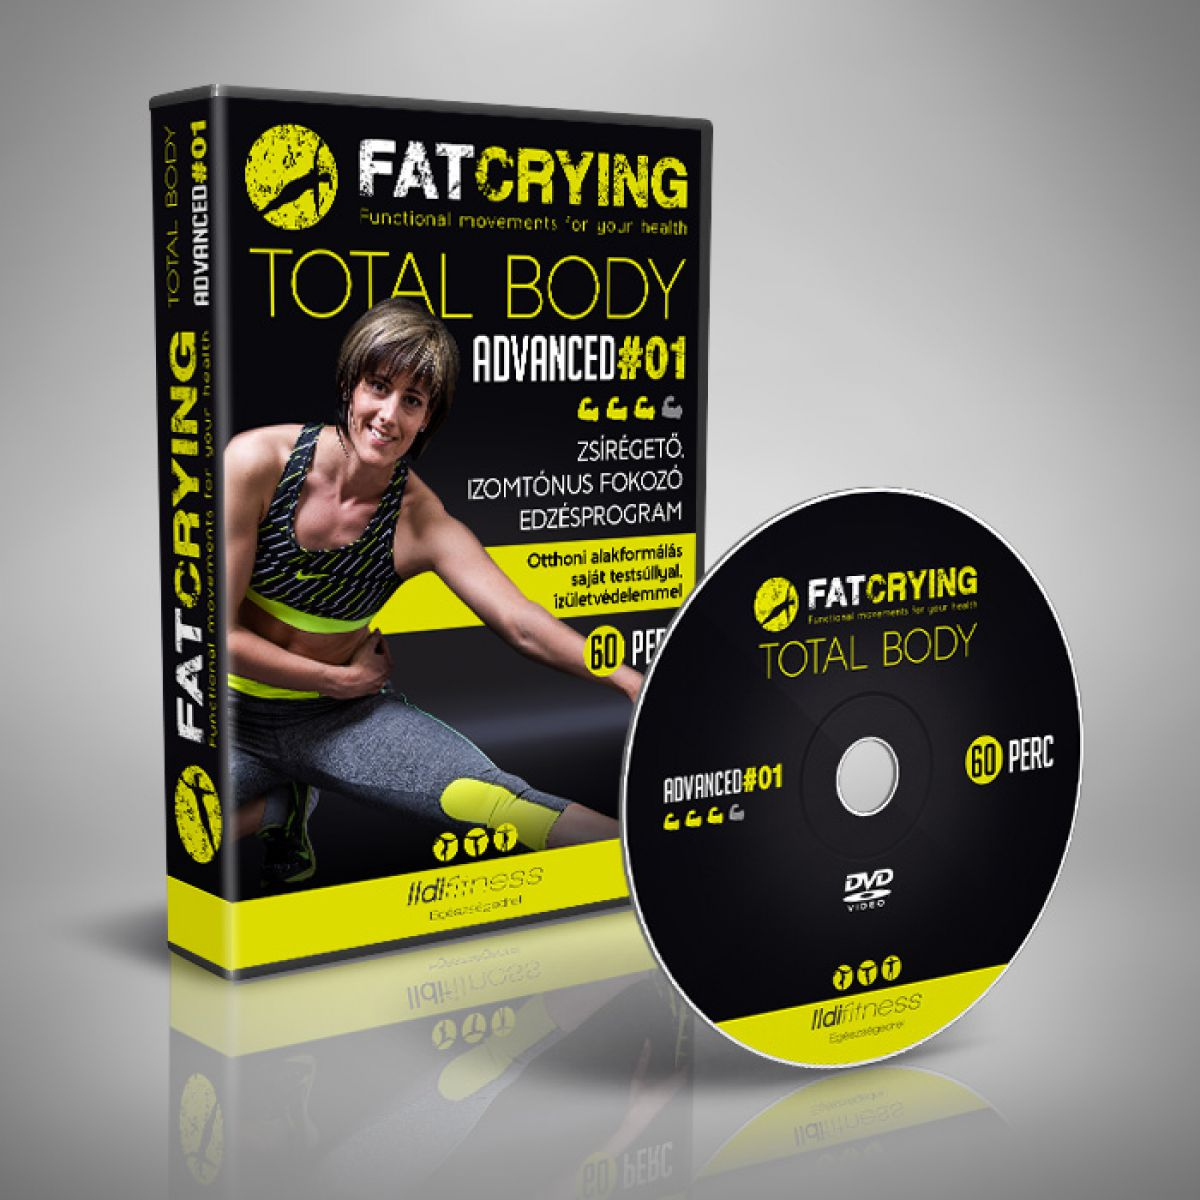 FATCRYING TOTAL BODY A01 (DVD) (1)